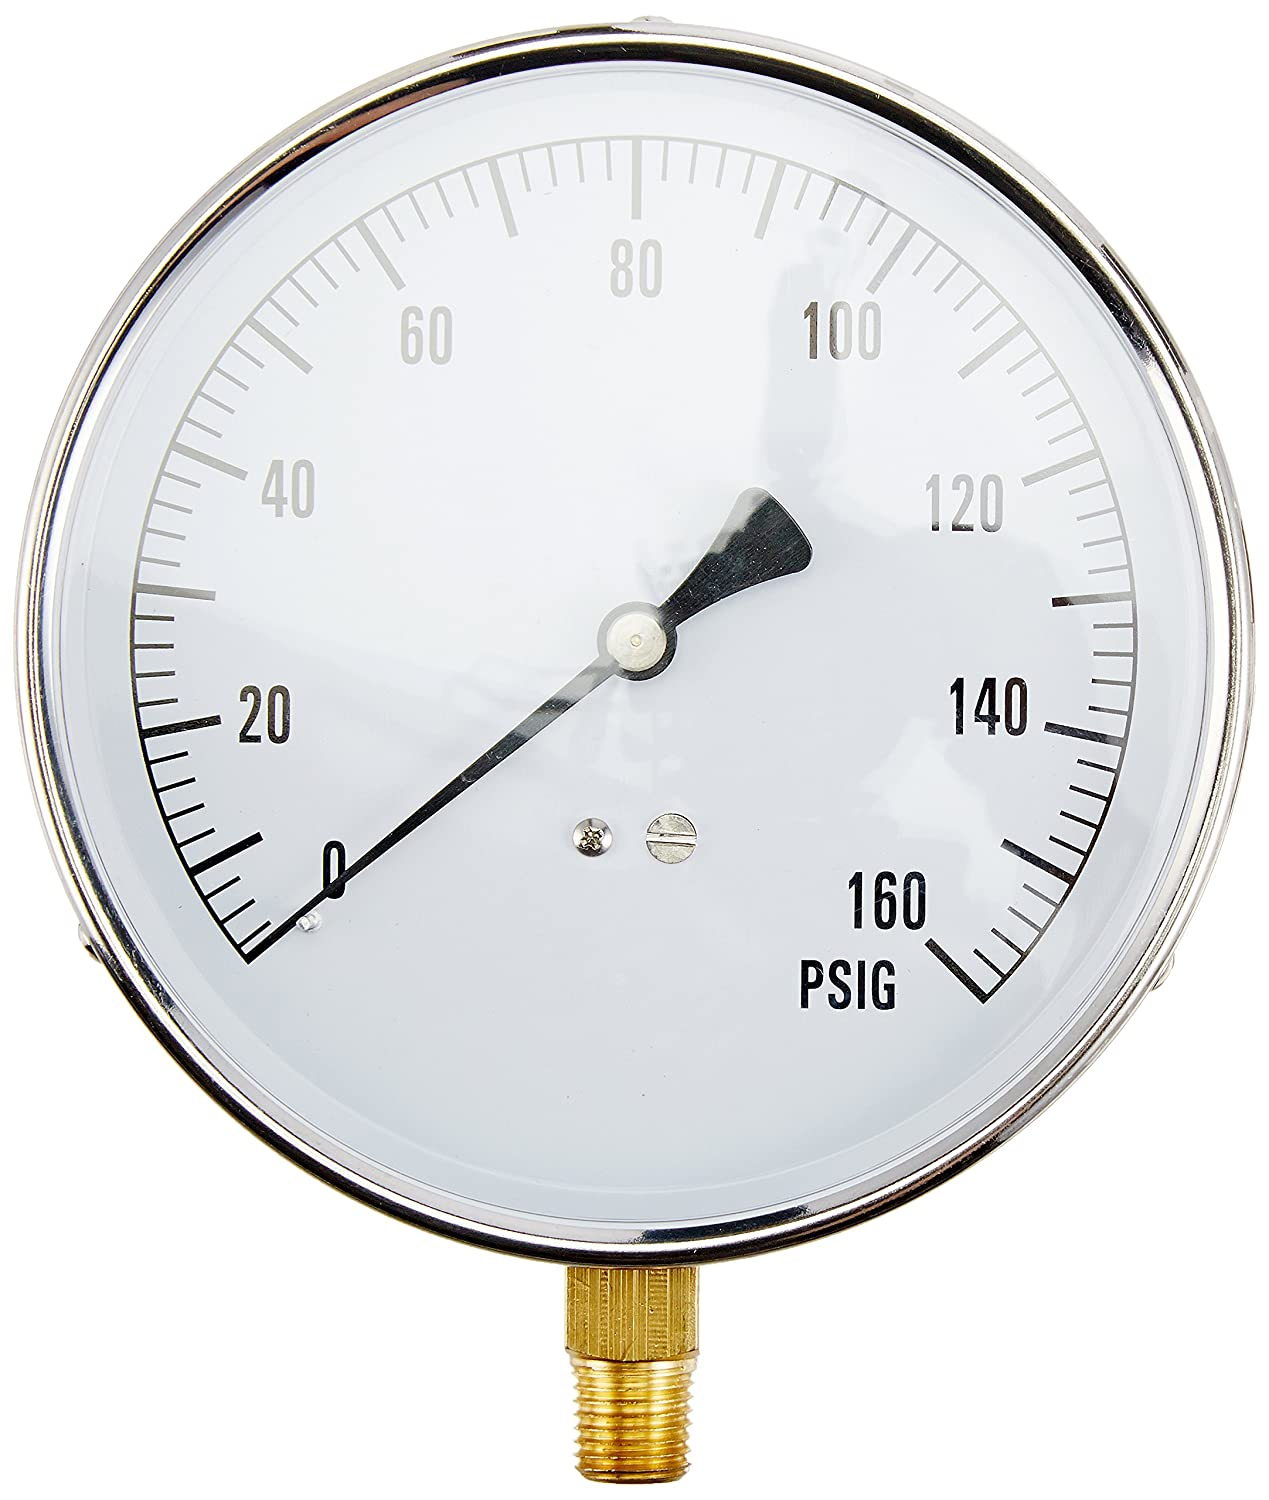 """PIC Gauge CONTRACTOR-4LF4"""" Dial, 0/160 psi Range, 1/4"""" Male NPT Connection Size, Bottom Mount Dry Non-Fillable Contractor Series Pressure Gauge with a Stainless Steel Case, Brass Internals, and Plastic Lens"""